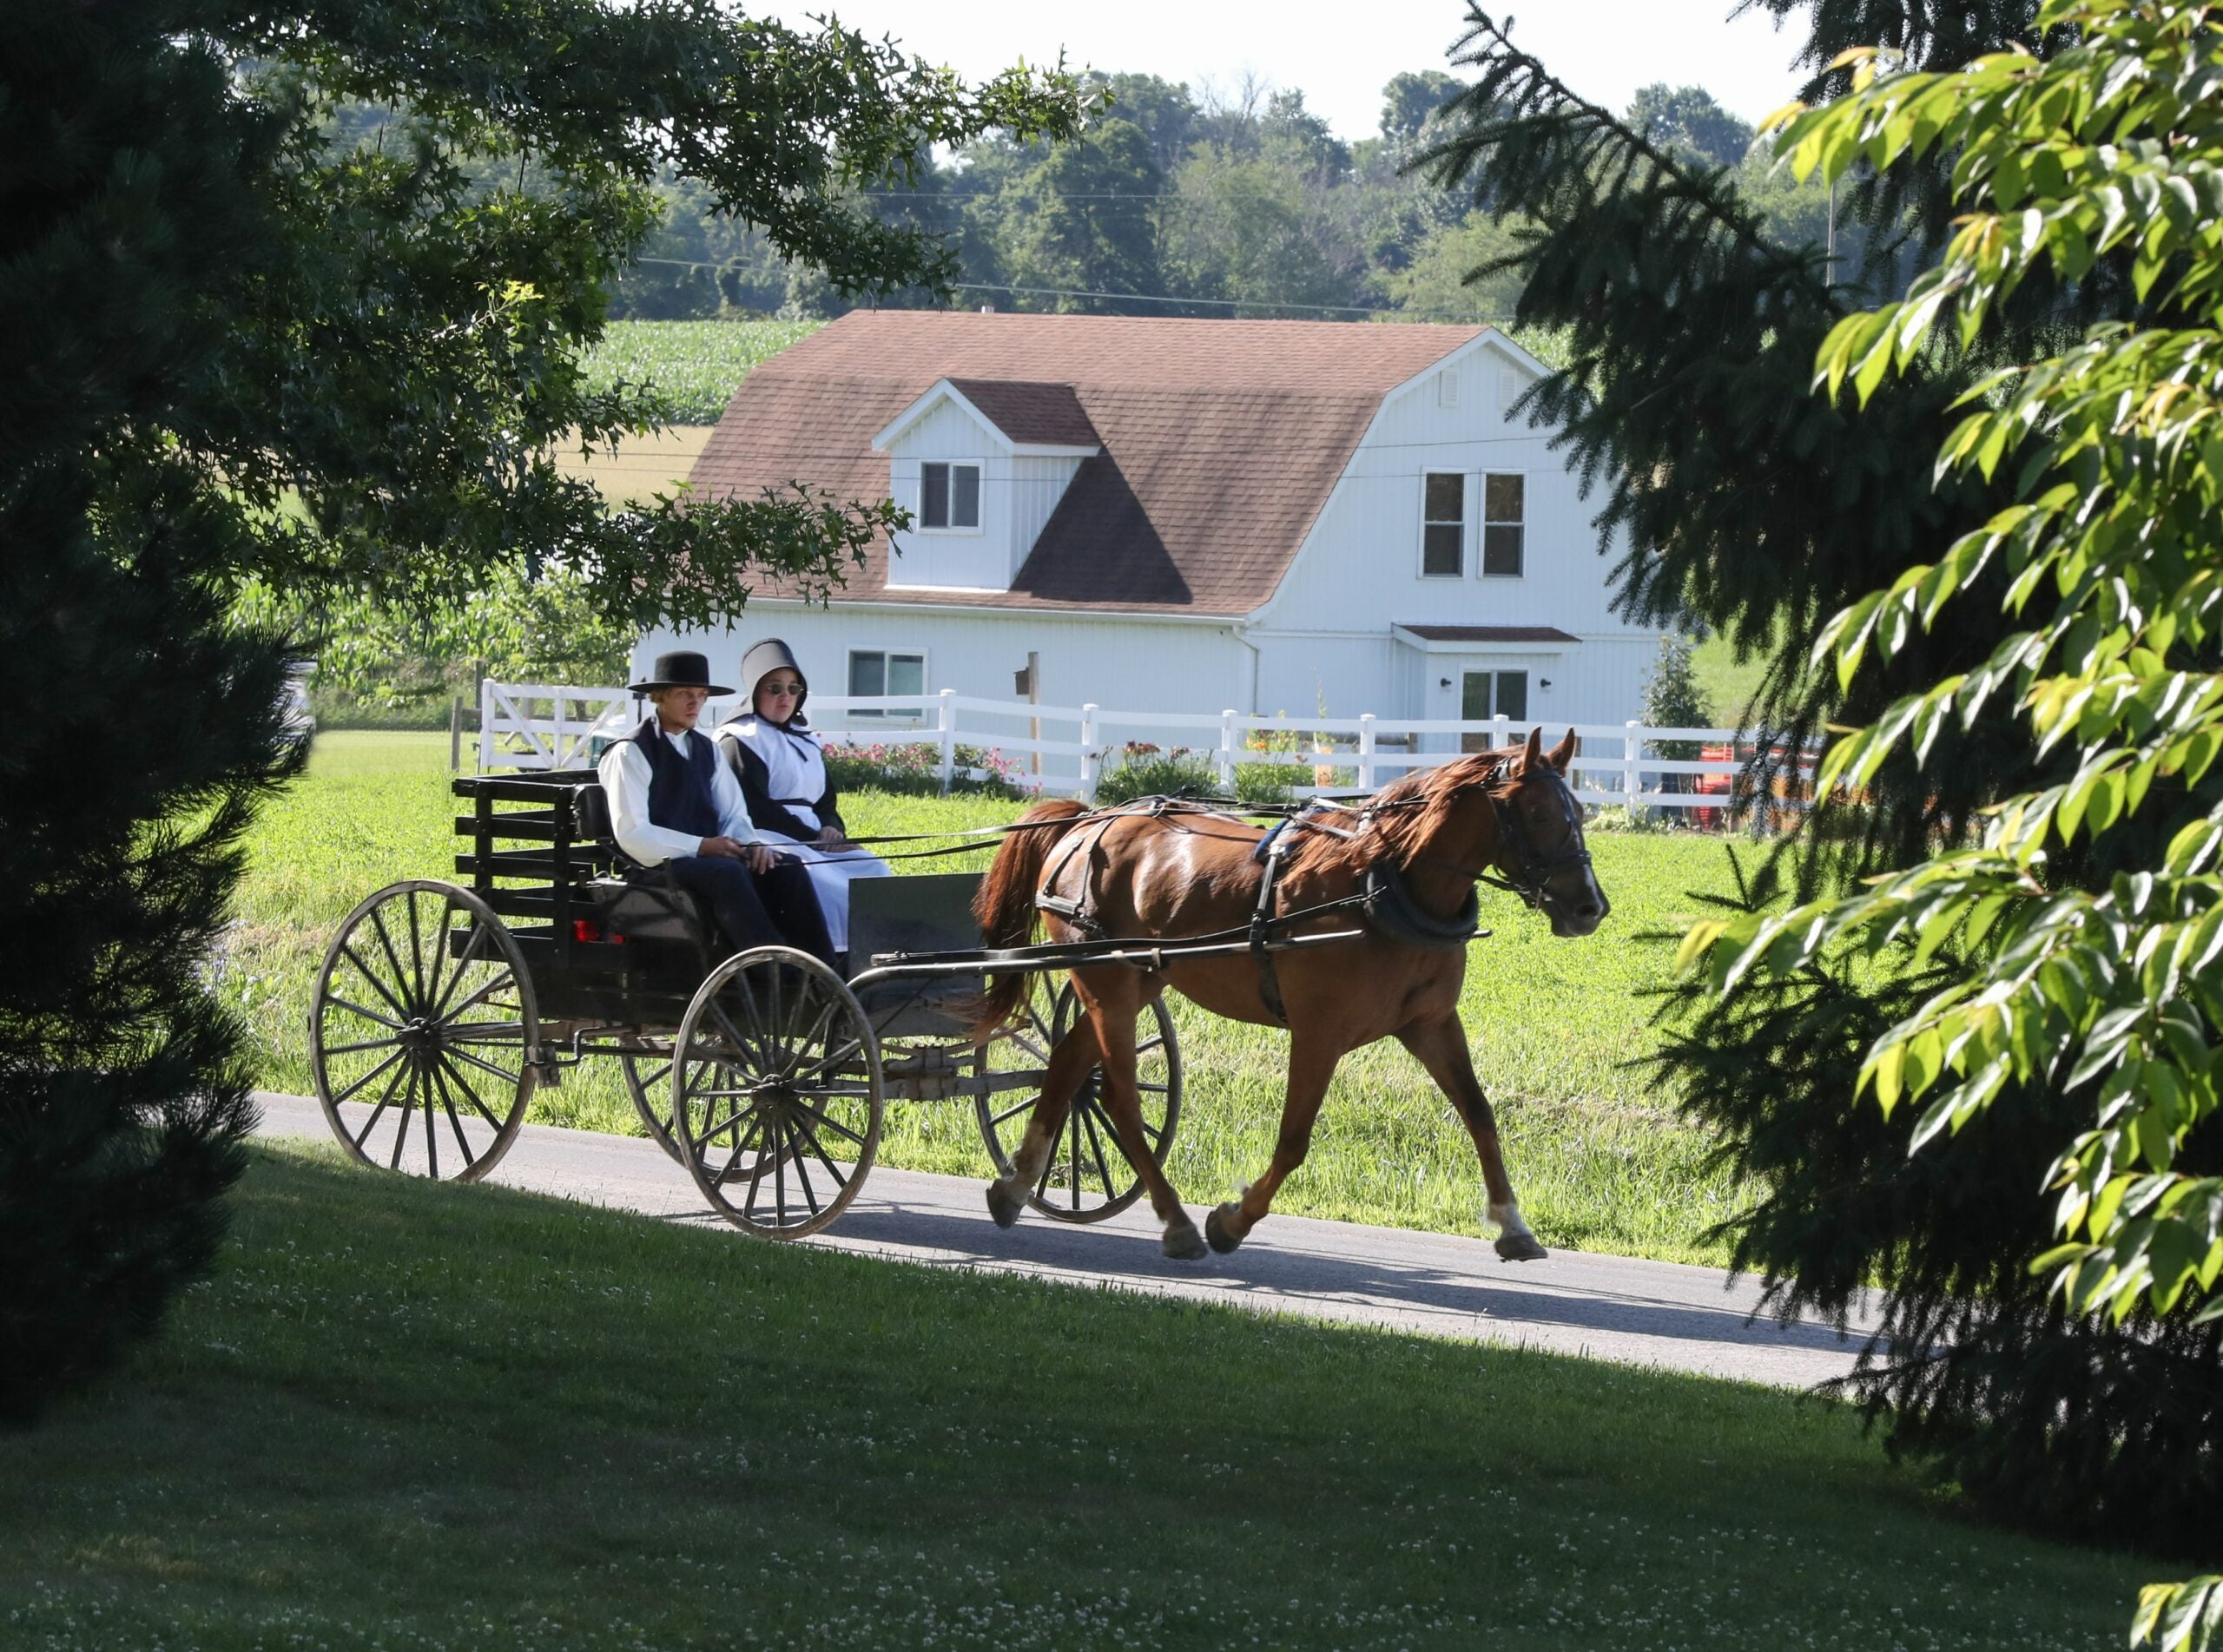 Amish couple riding on a horse-drawn wagon